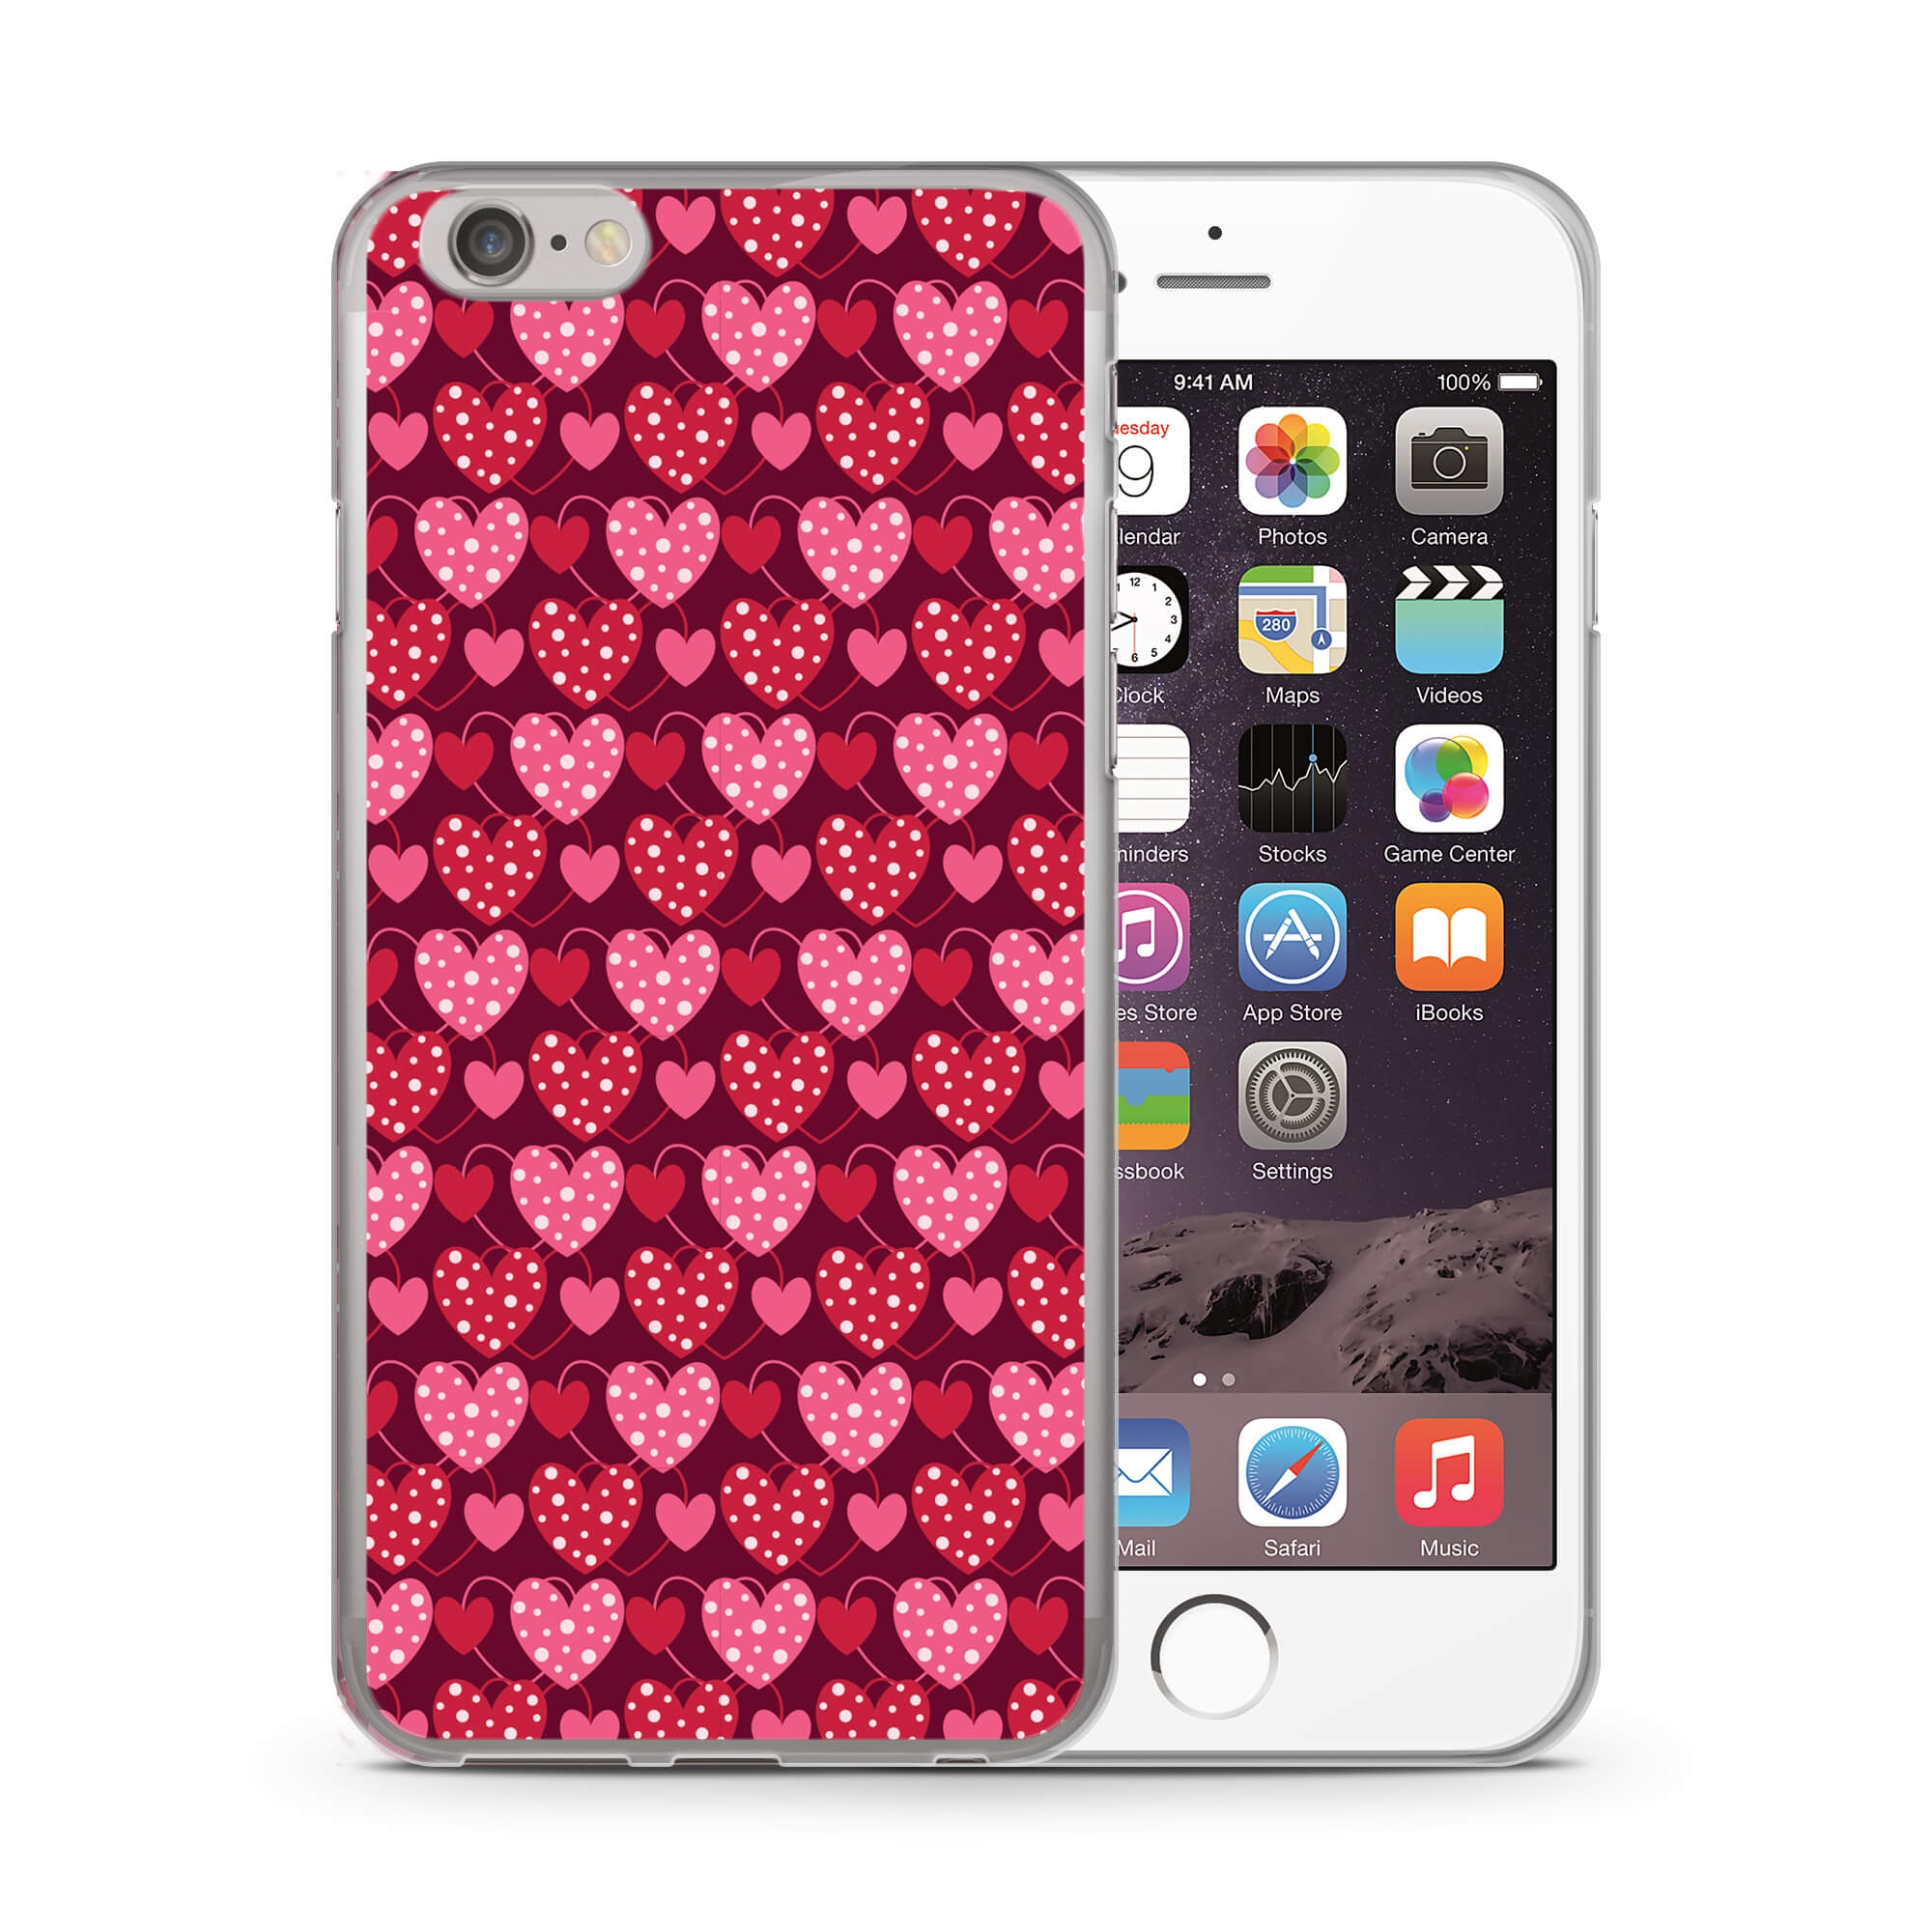 MY ART kryt Apple iPhone 6 Plus   6S Plus RED HEARTS (027) 31c2a92bea2